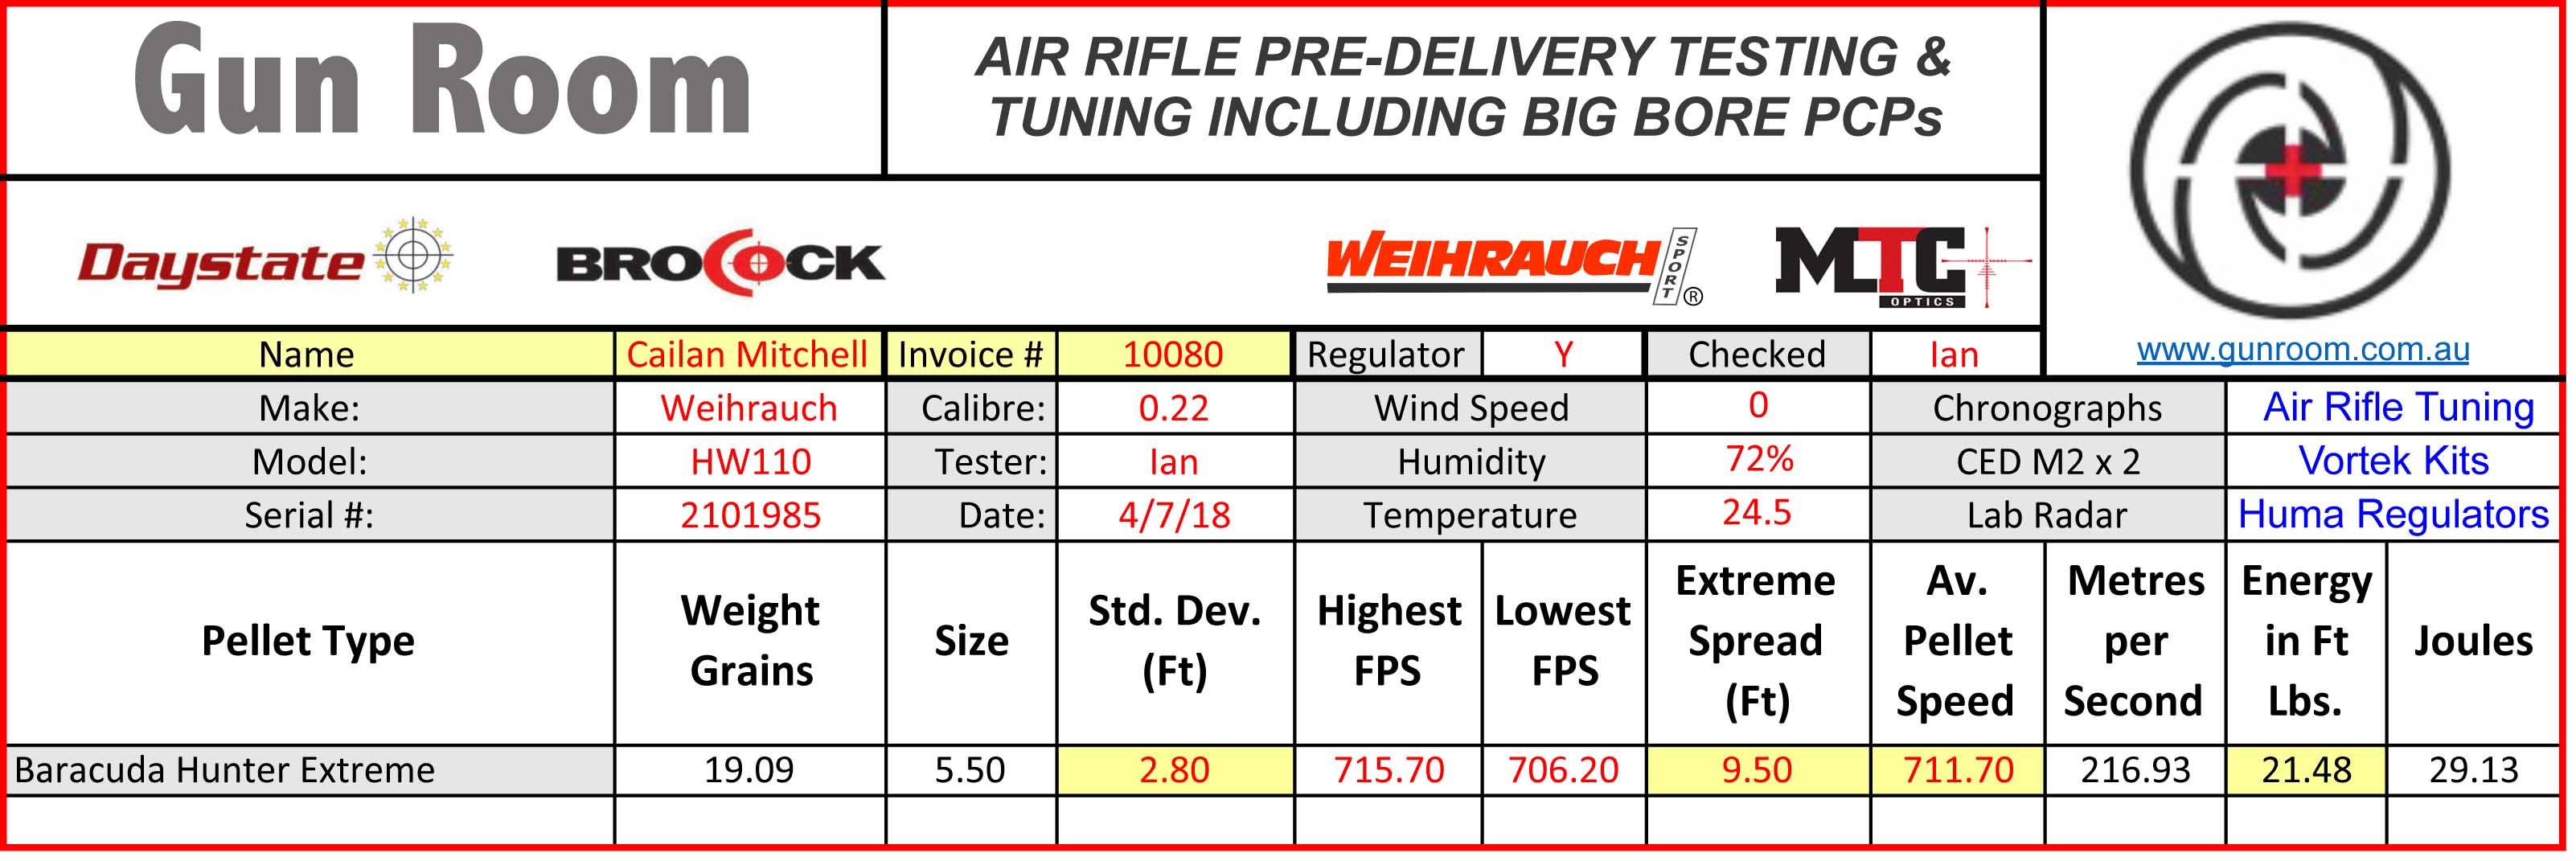 Pcp Excel Spreadsheet In Air Rifle Testing Of New Spring And Pcp Air Rifles Effective In 2019.